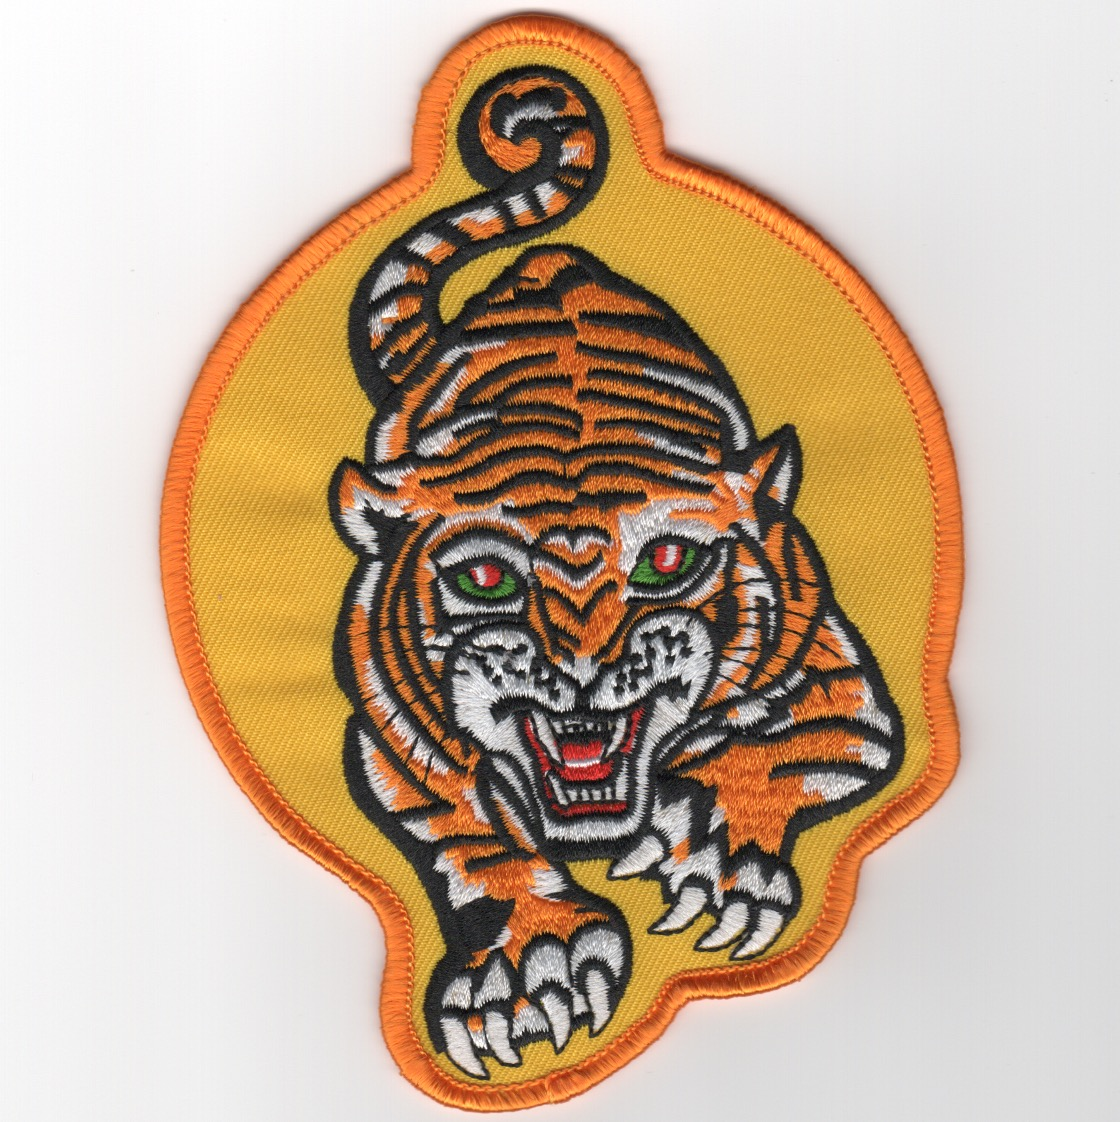 VA-65 'Tiger' Patch (Med/Yellow/Orange Border)